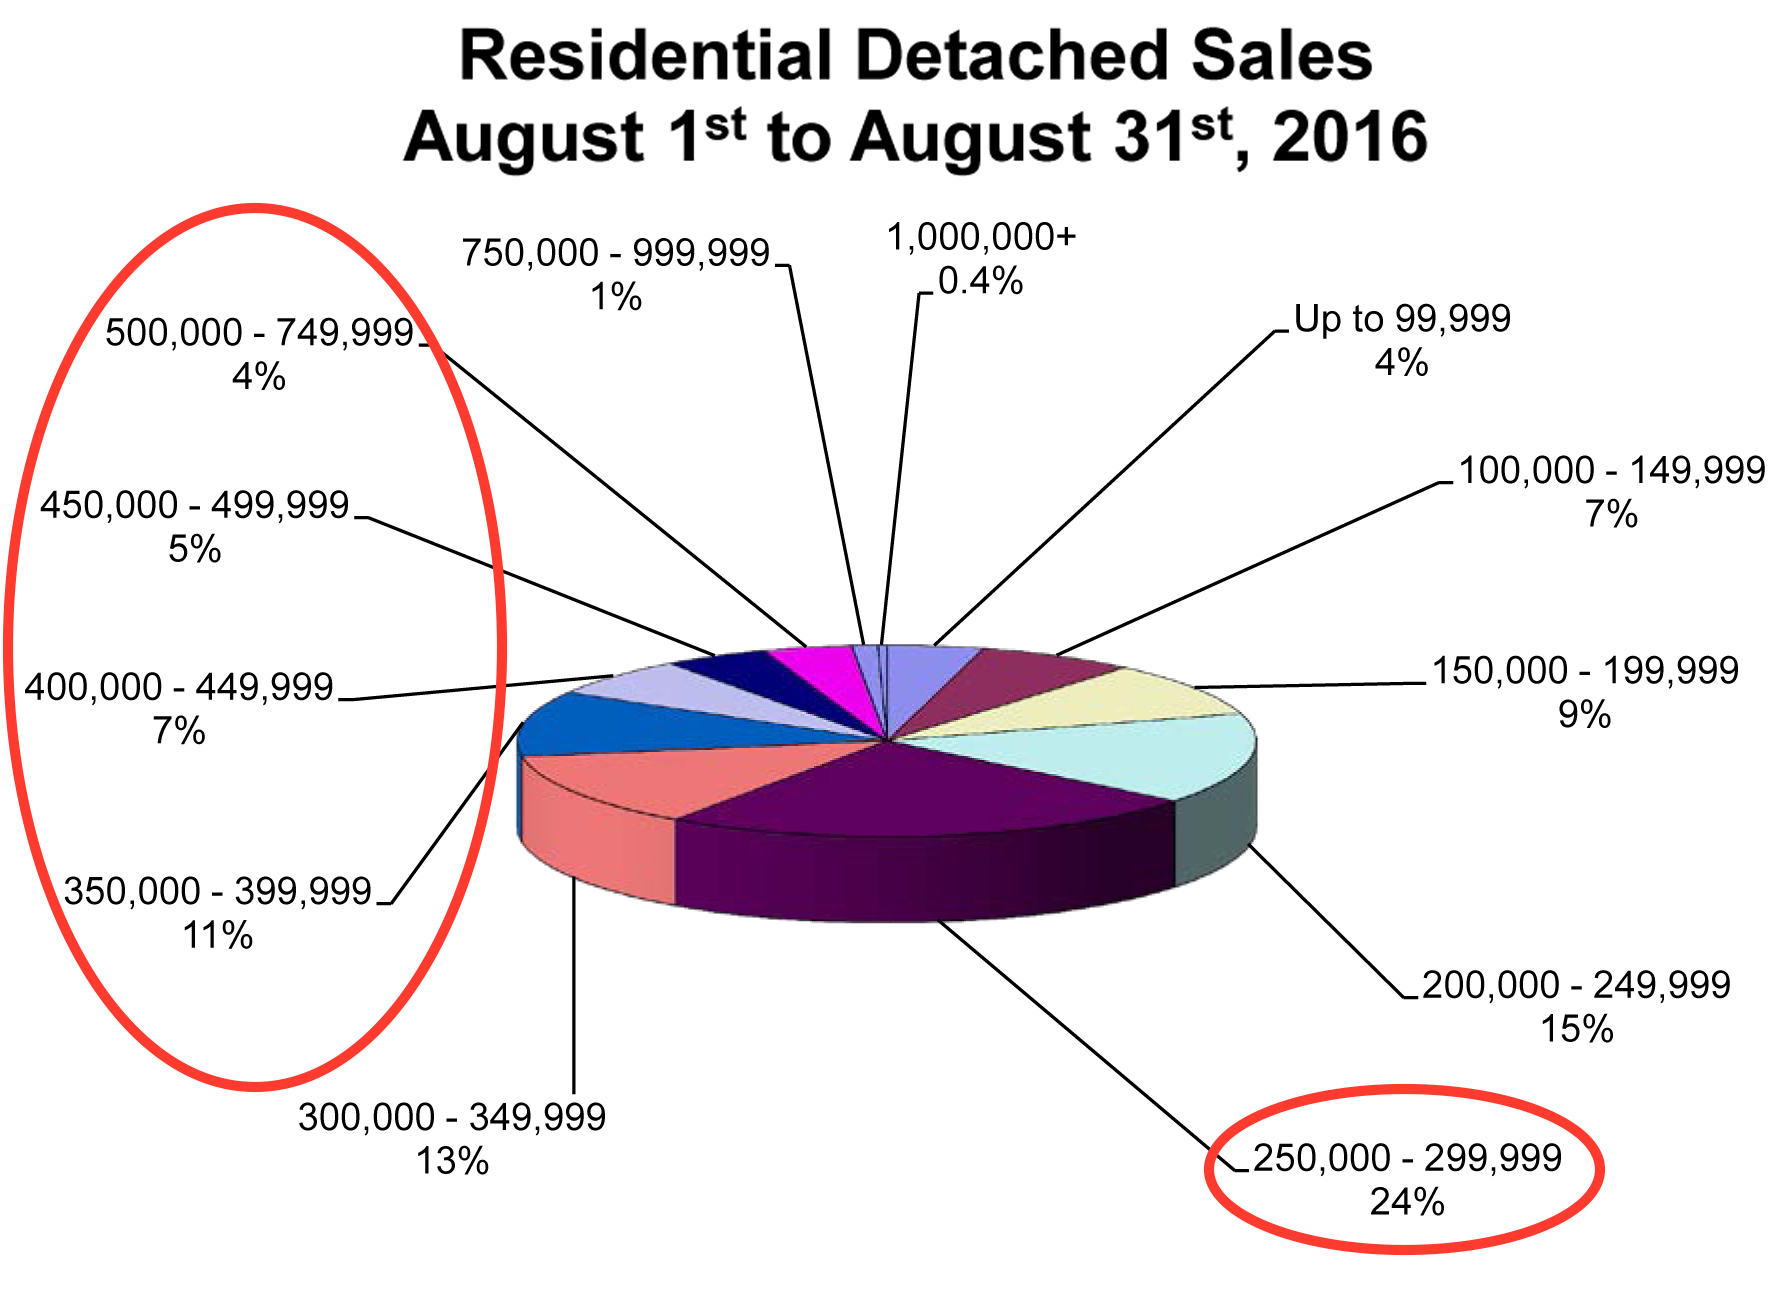 rd-sales-pie-chart-august-2016